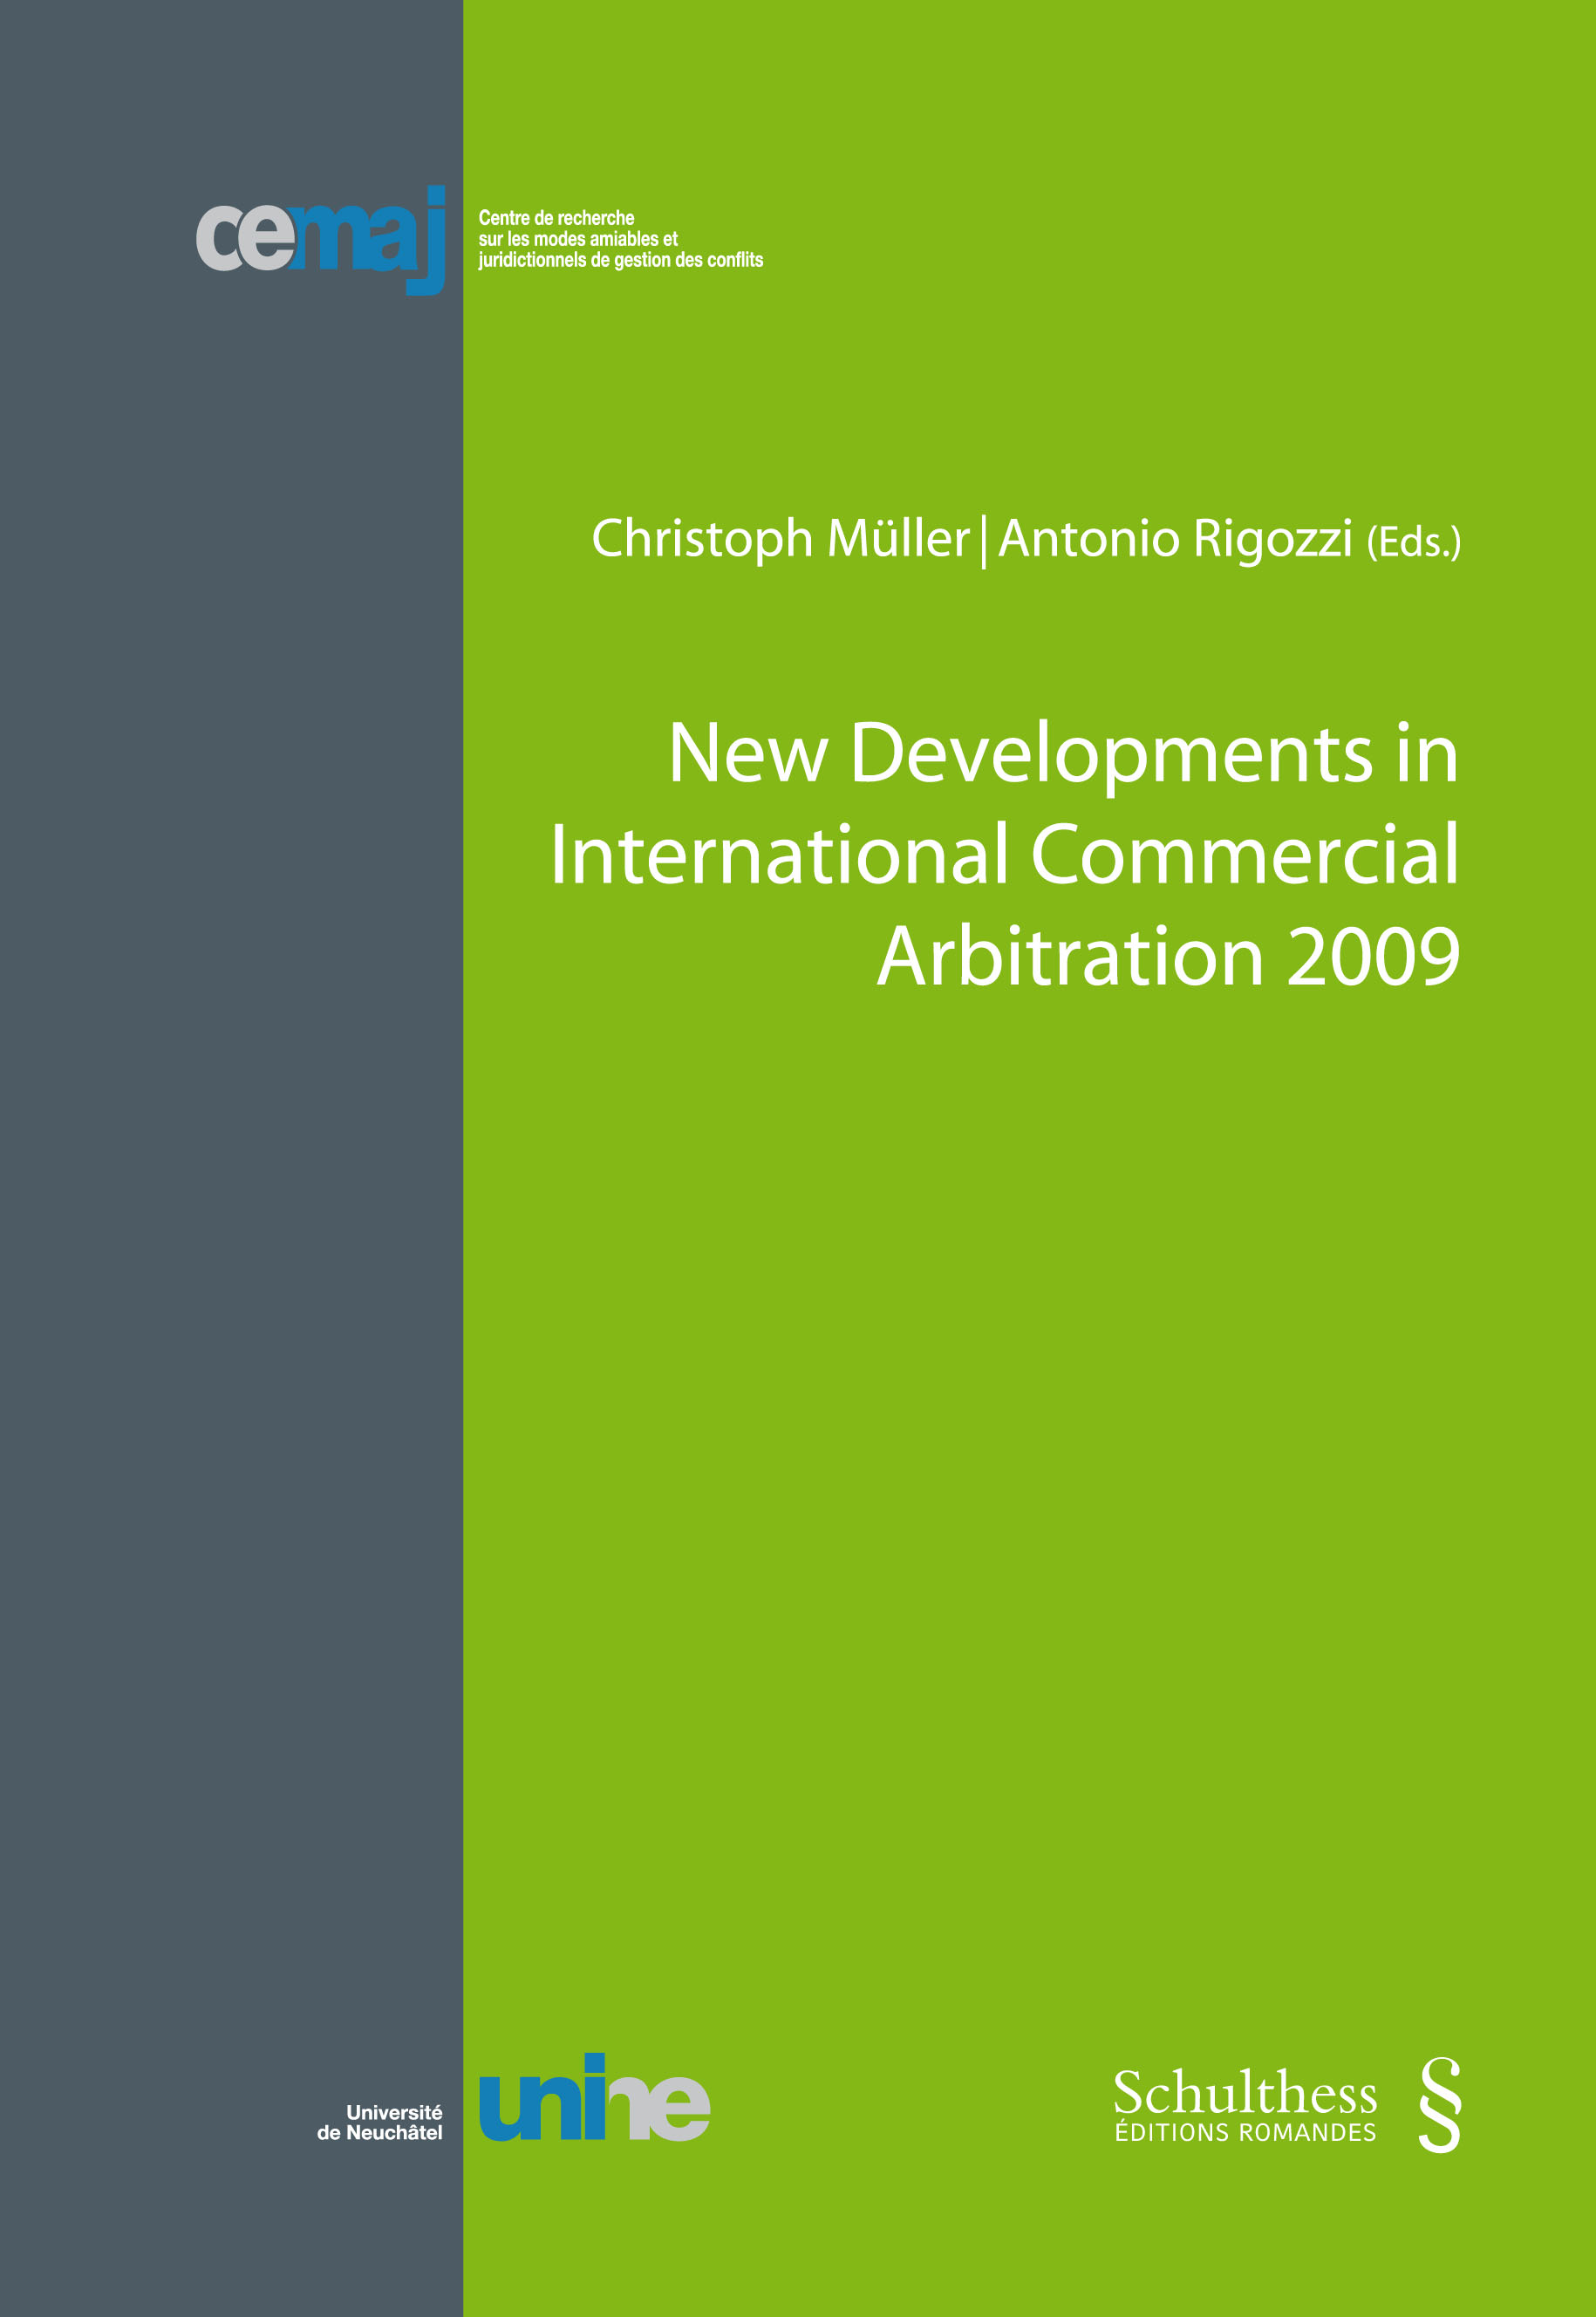 New Developments in International Commercial Arbitration 2009